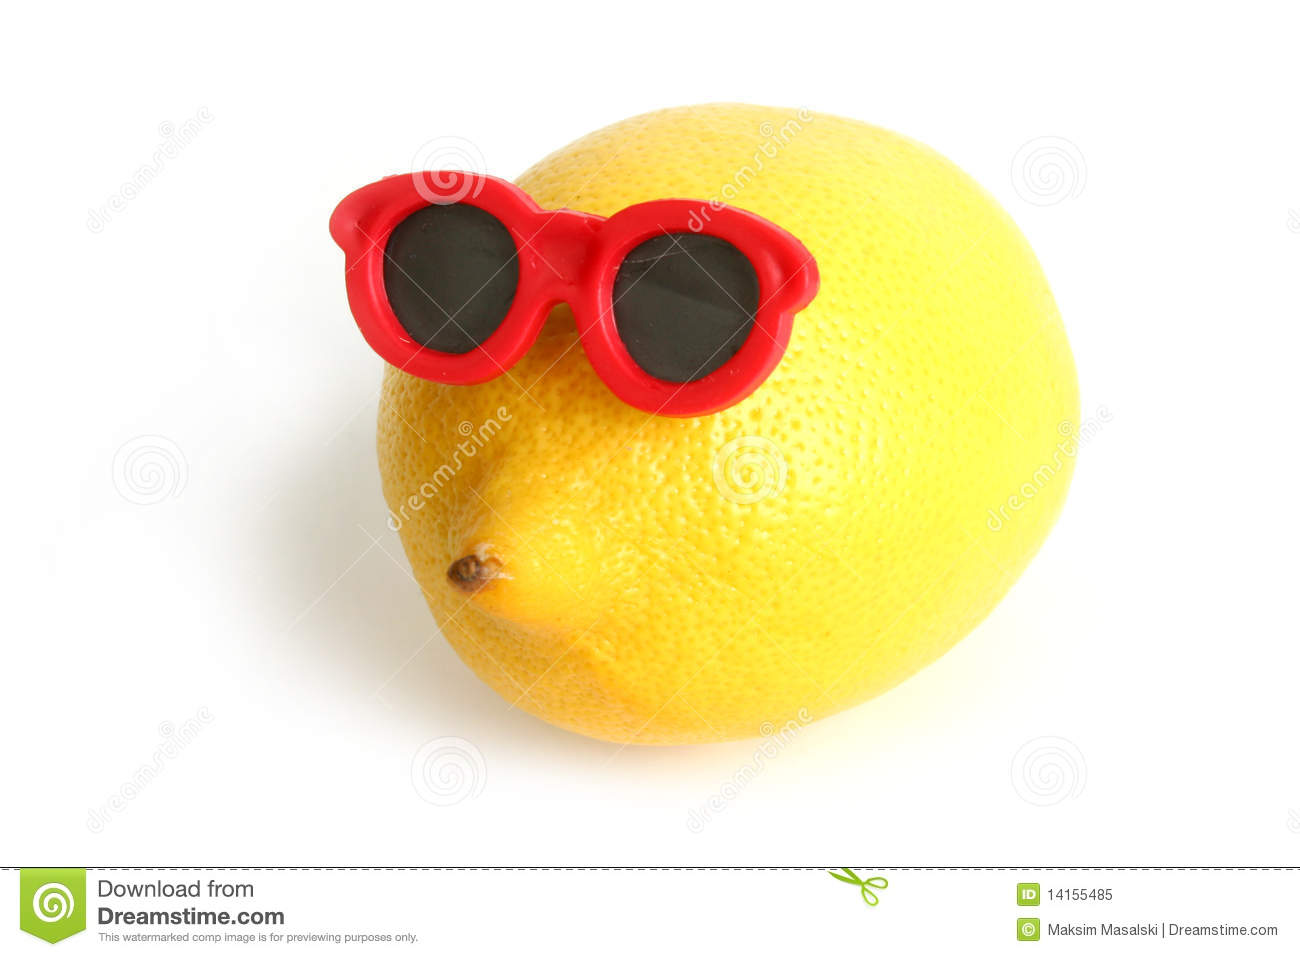 Funny Lemon In Sun Glasses Royalty Free Stock Photo - Image: 14155485